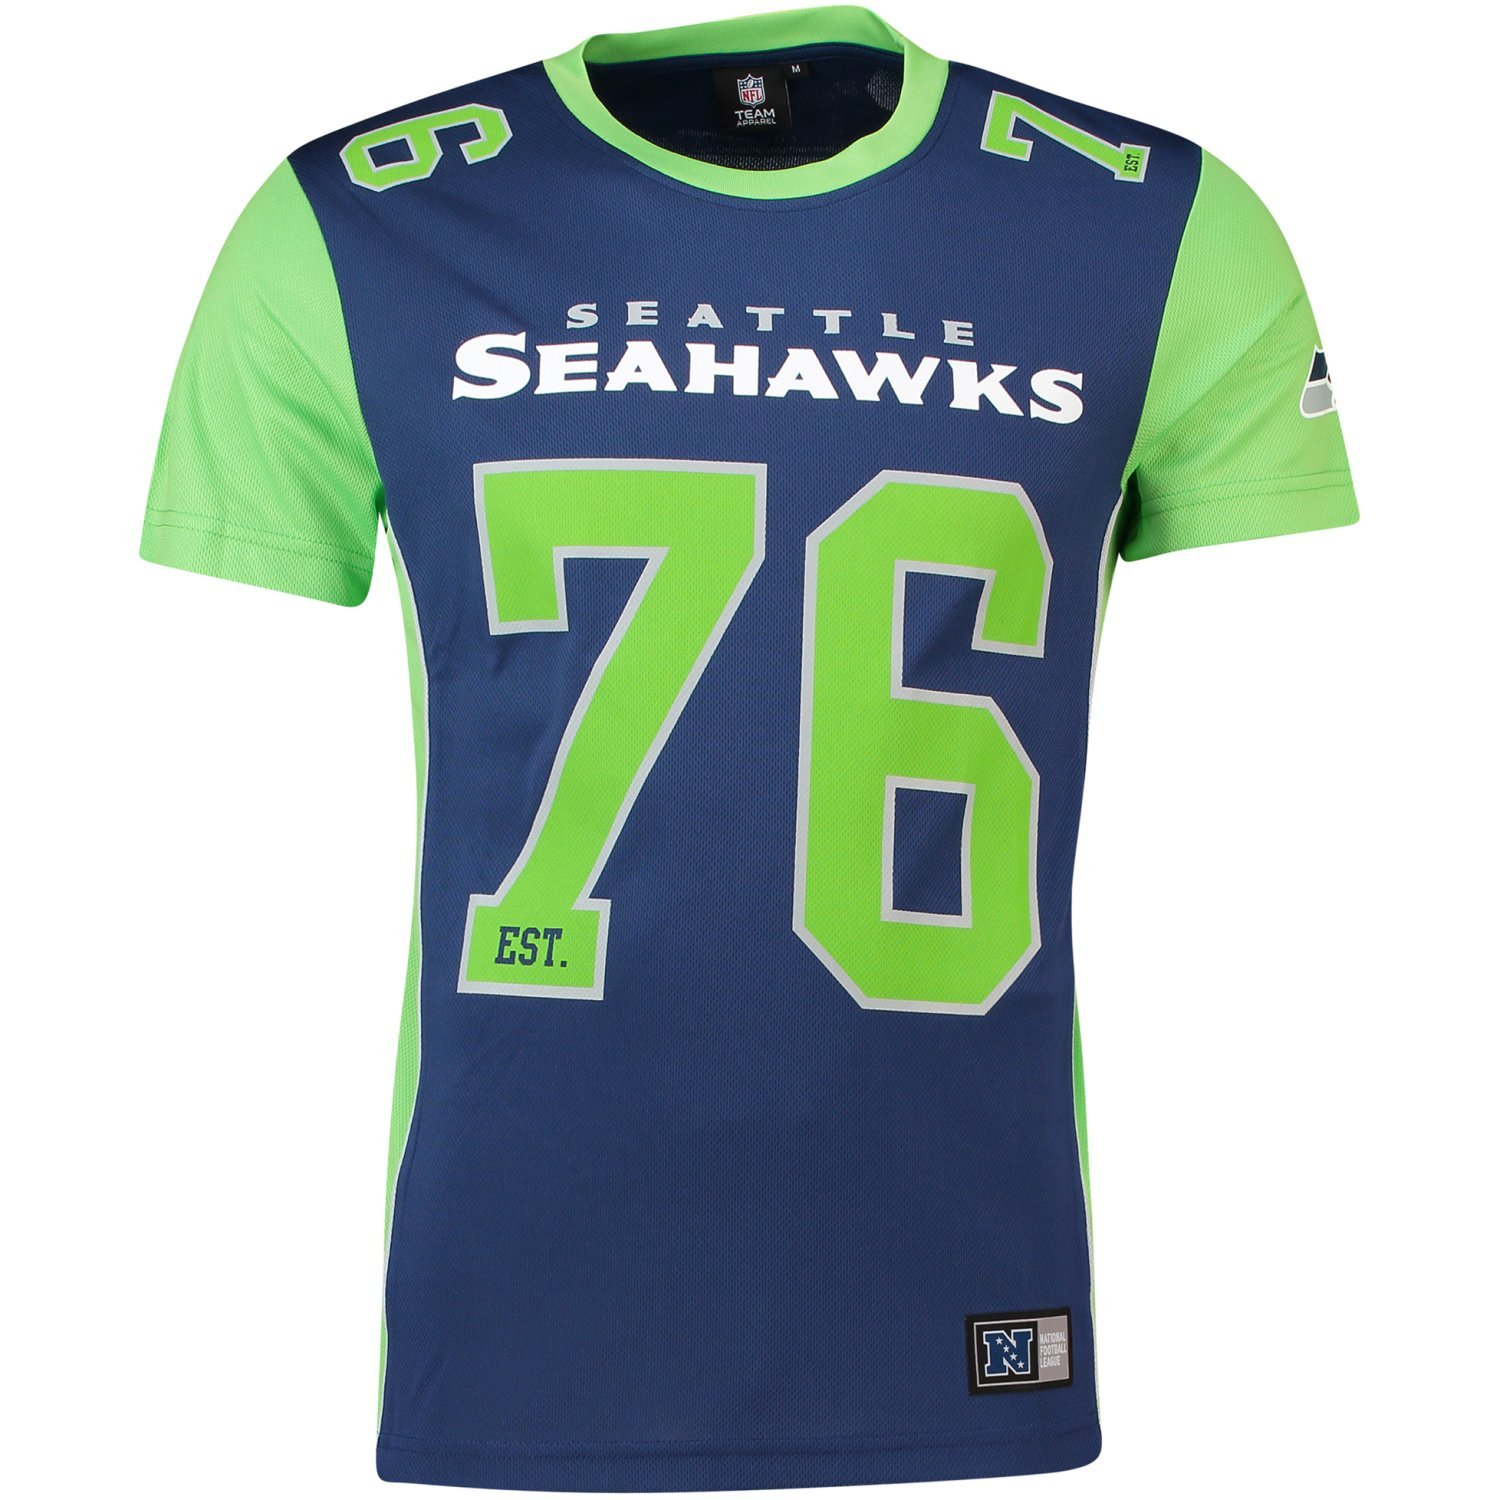 Majestic T-Shirt – NFL Seattle Seahawks Dene Poly Mesh Blau/Grün Majestic Athletics